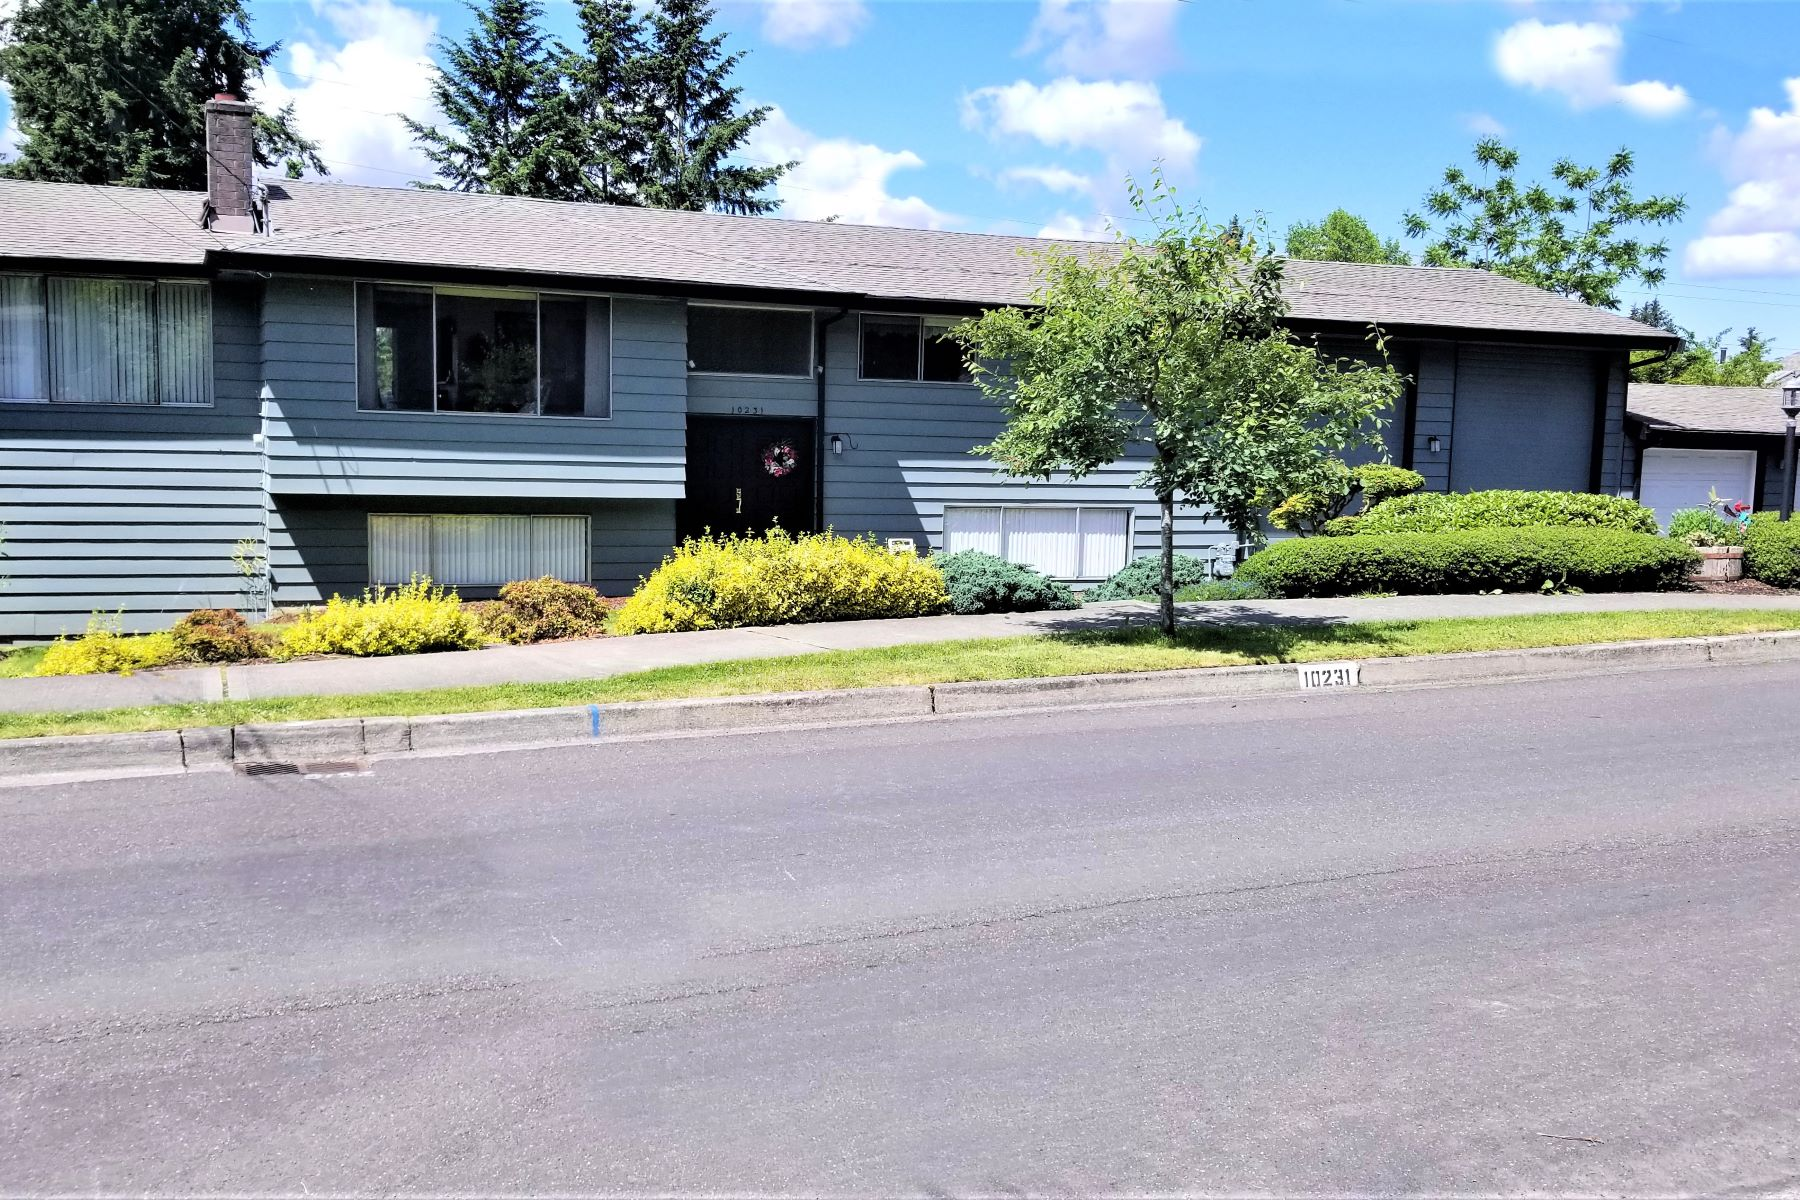 Single Family Homes のために 売買 アット Unique Rose Hill Opportunity 10231 126th Ave NE, Kirkland, ワシントン 98083 アメリカ